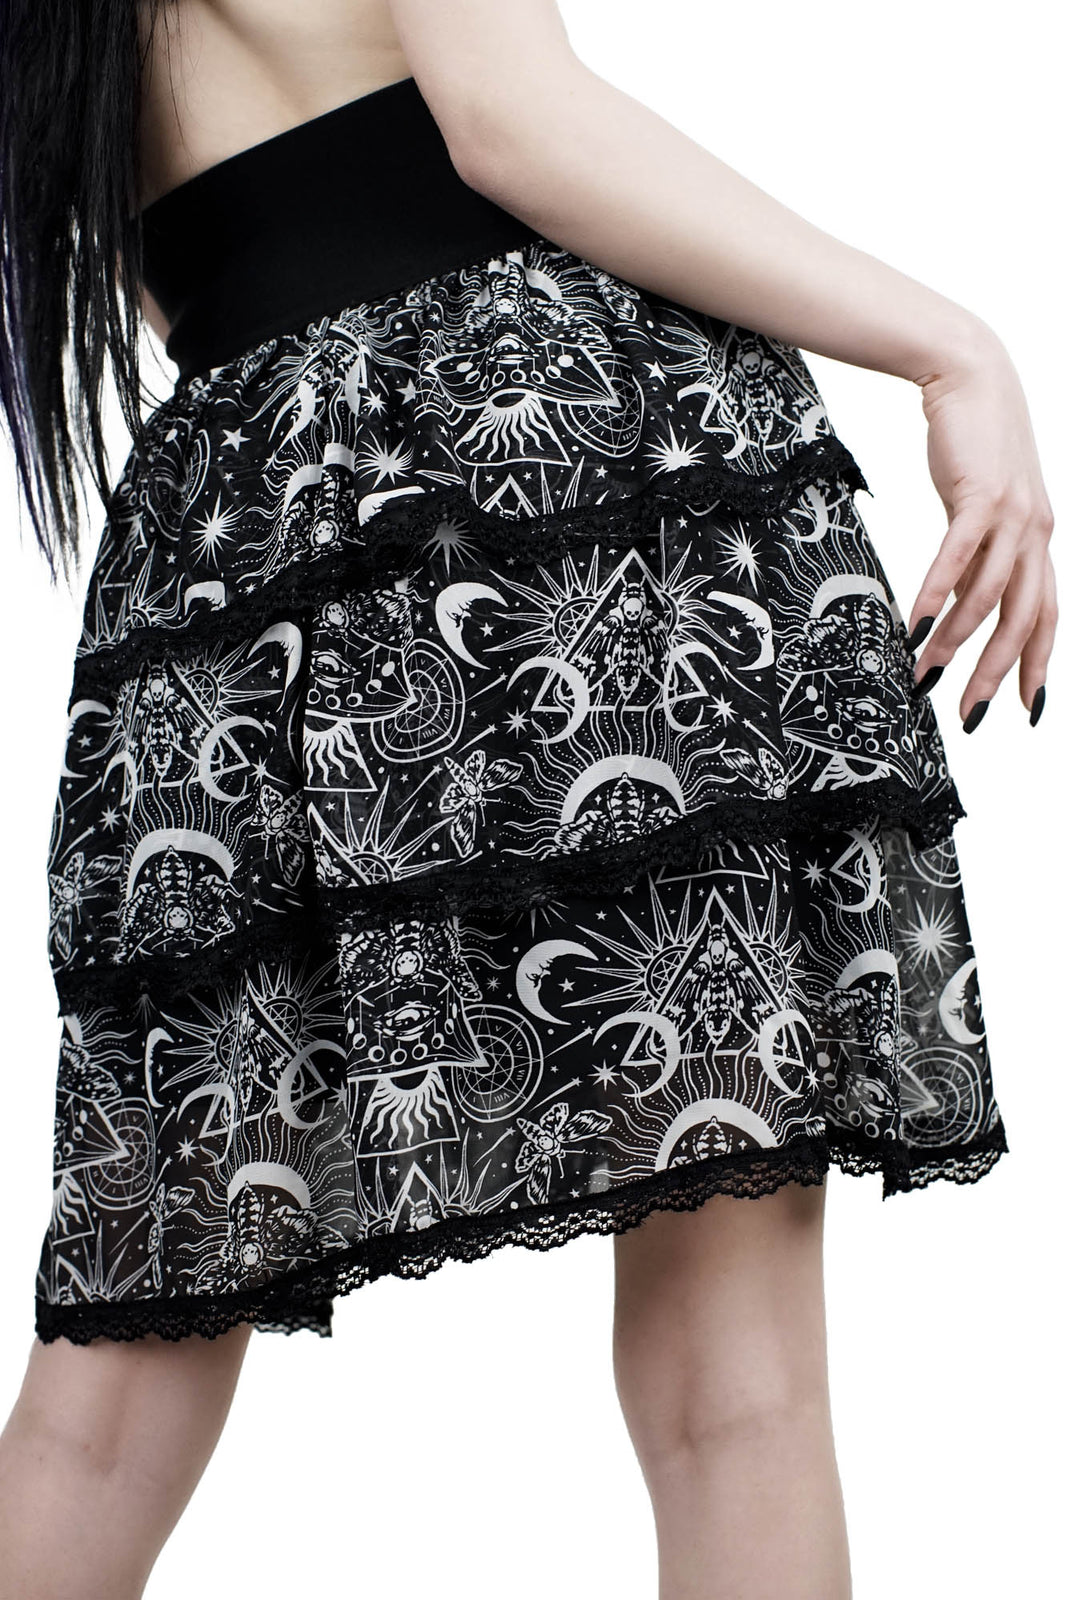 New Moon Corset Skirt [B]